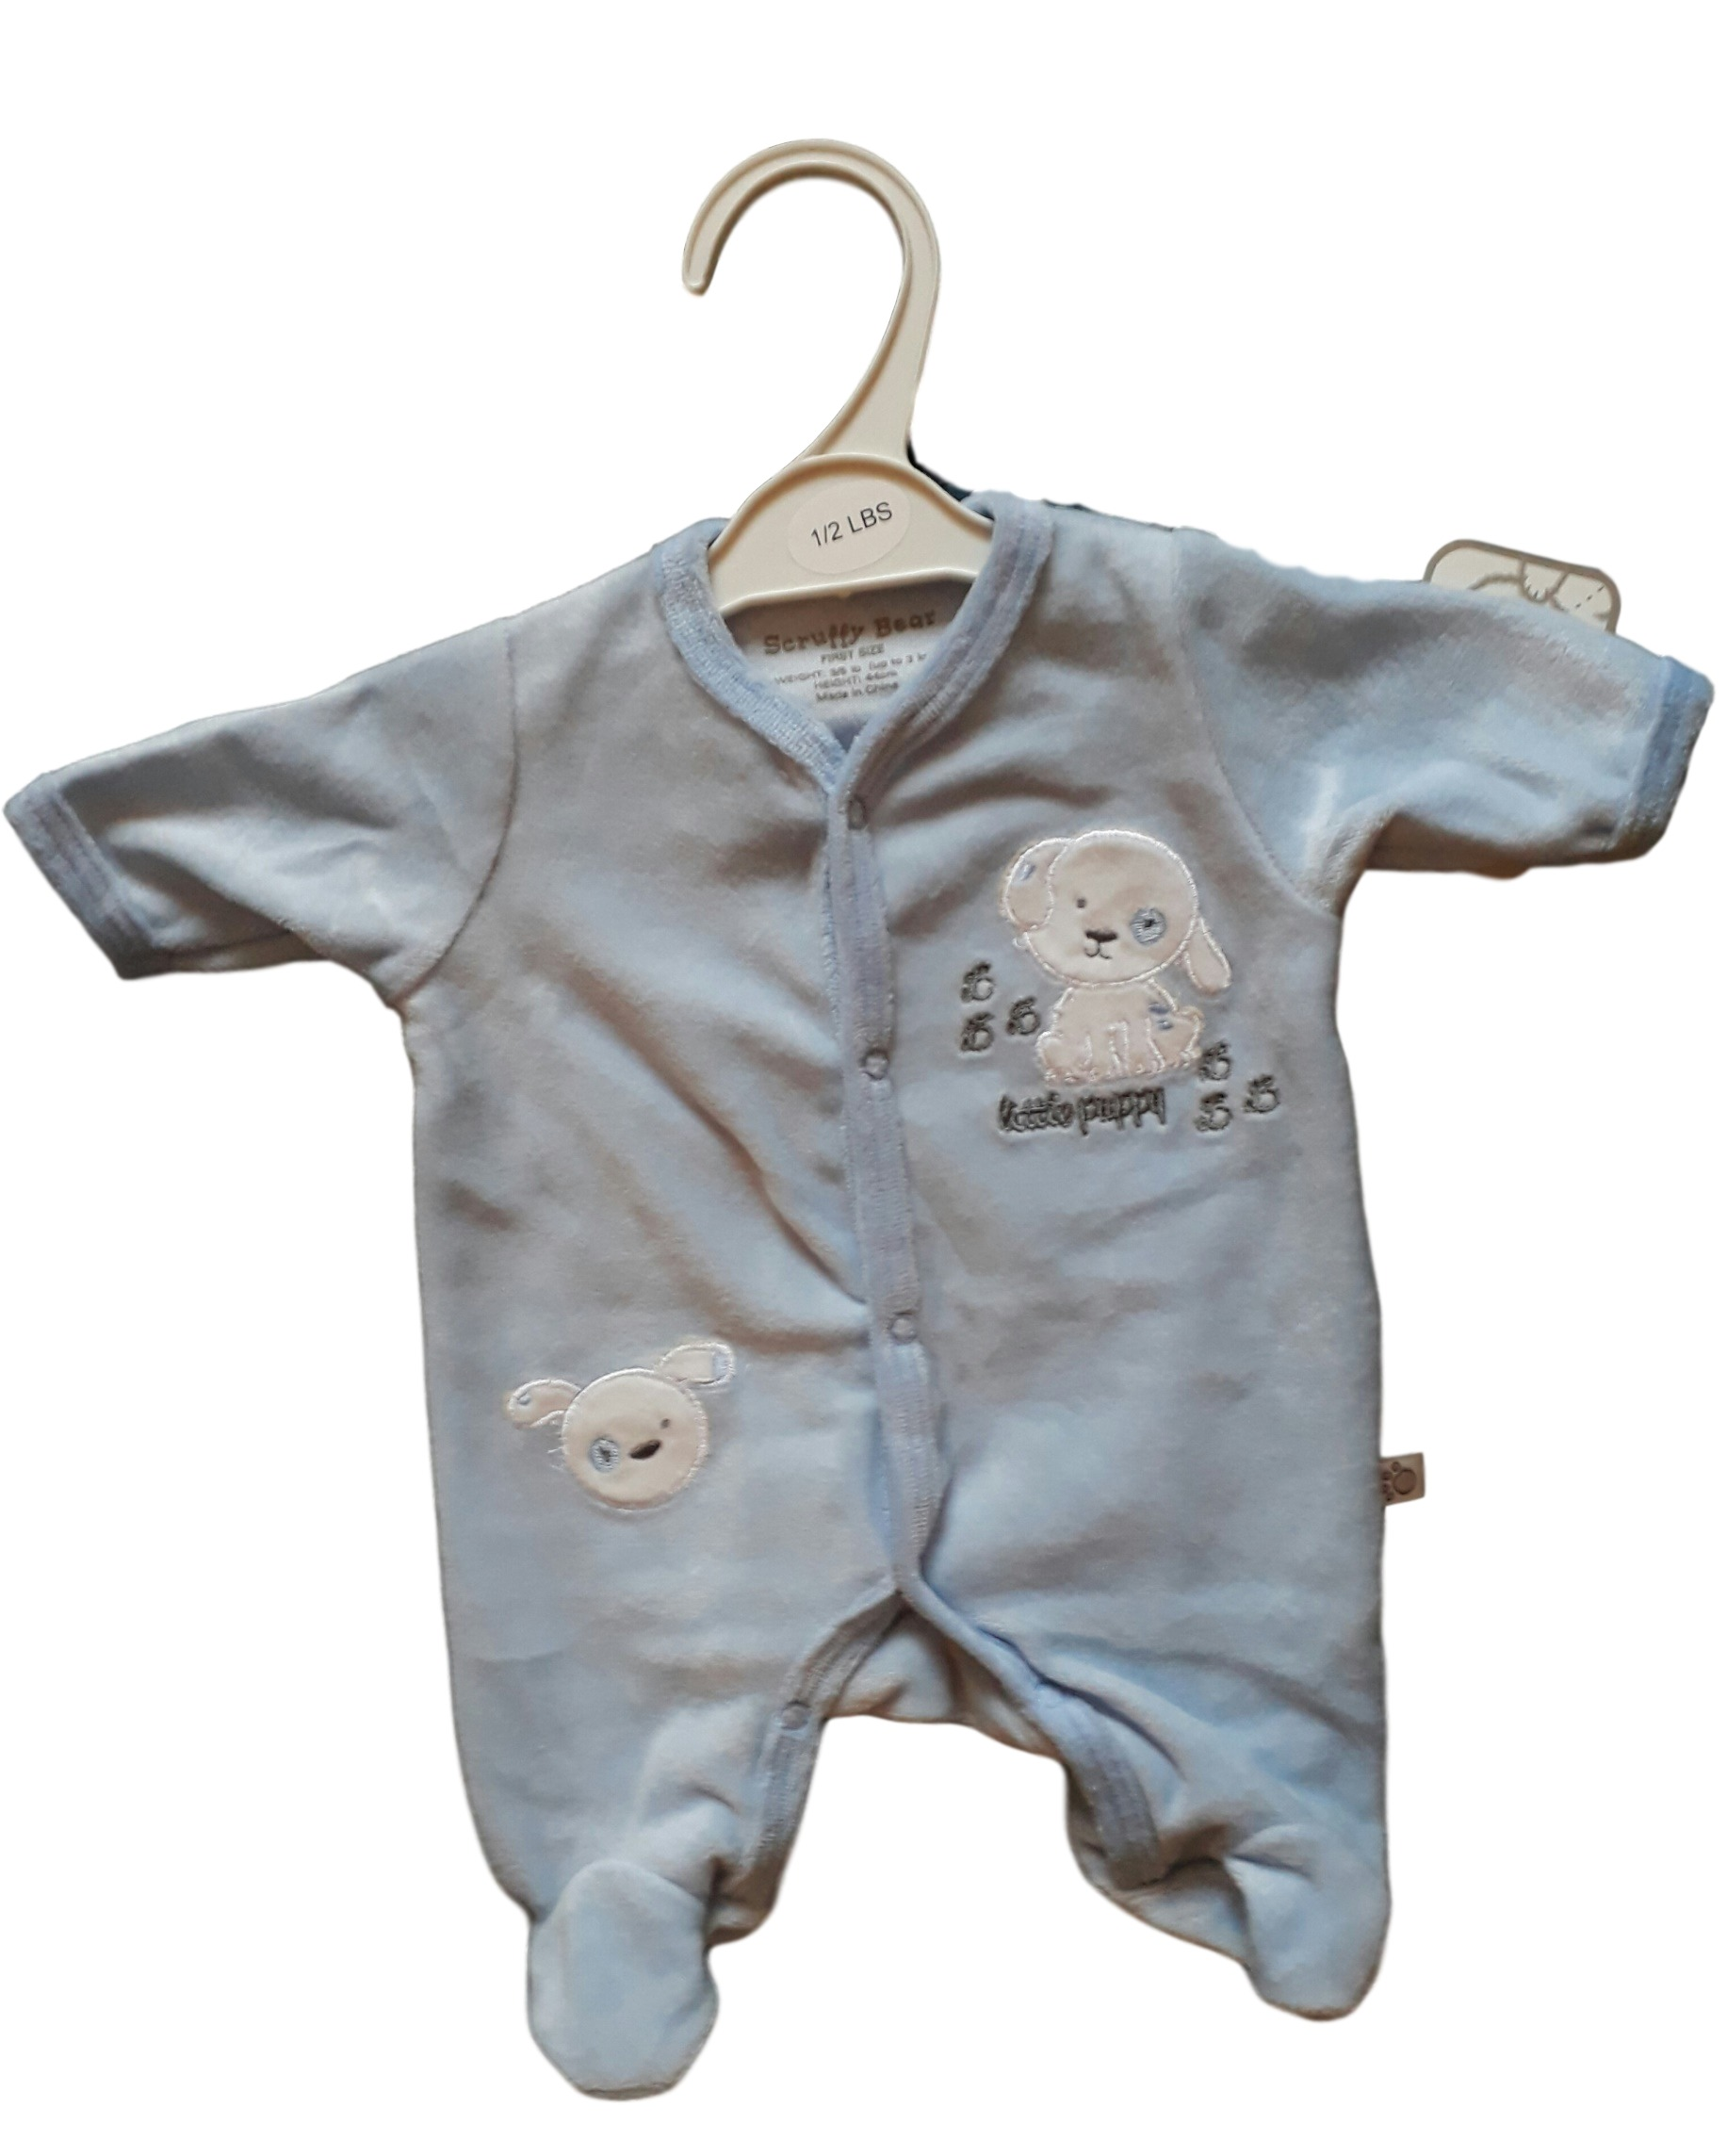 Premature baby clothes tiny babygrow velourLIL PUP BLUE WITH WHITE design all sizes